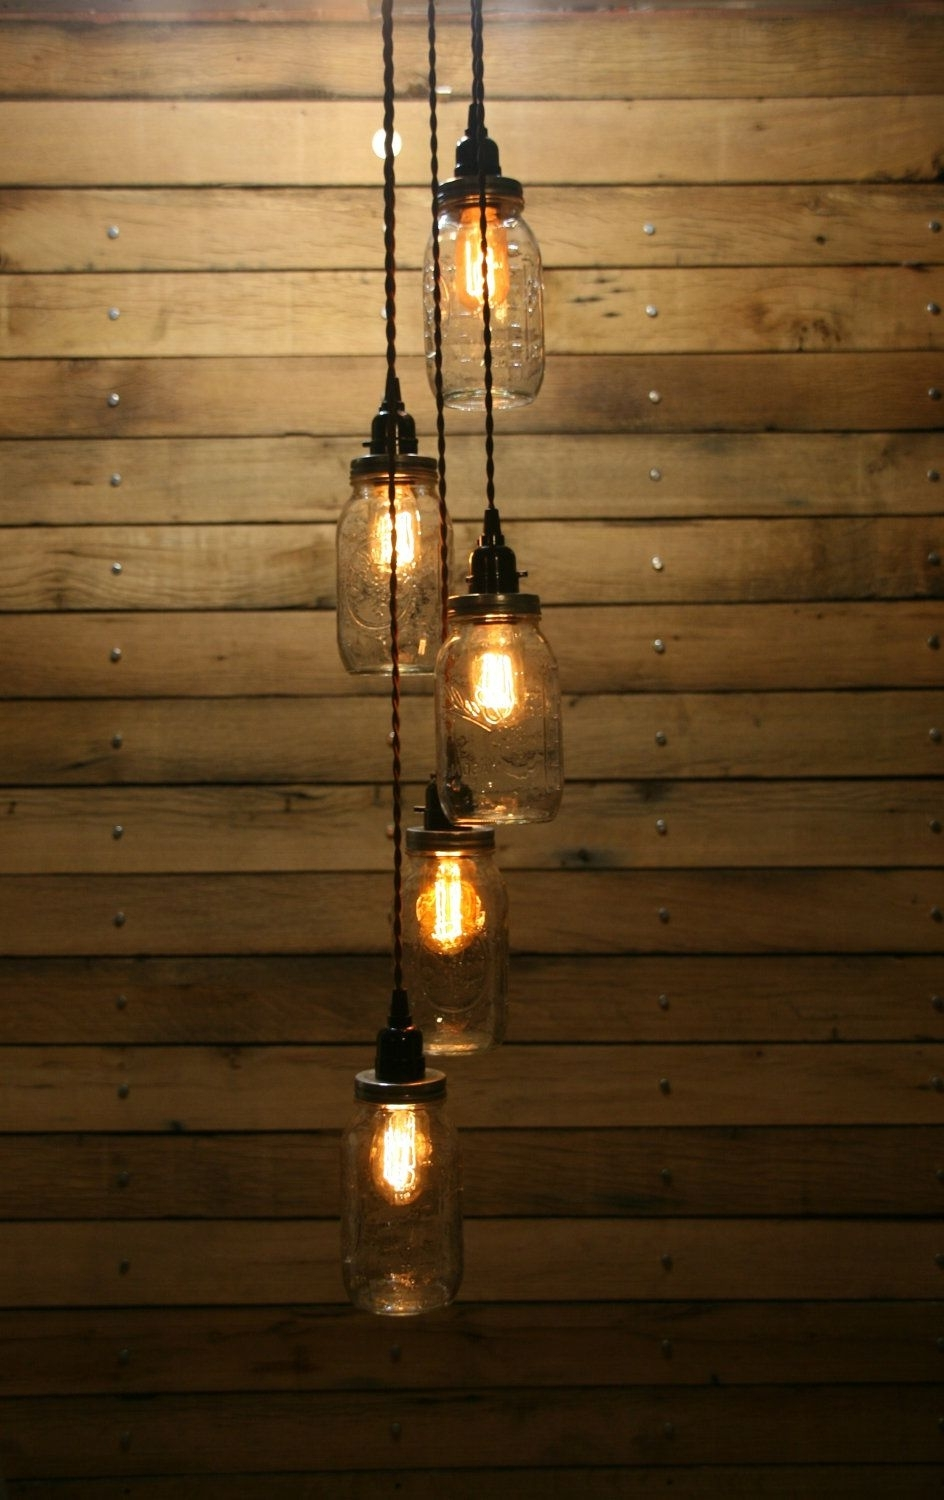 Most Current 5 Jar Pendant Light – Mason Jar Chandelier Light – Staggered Length Within Outdoor Hanging Mason Jar Lights (View 8 of 20)